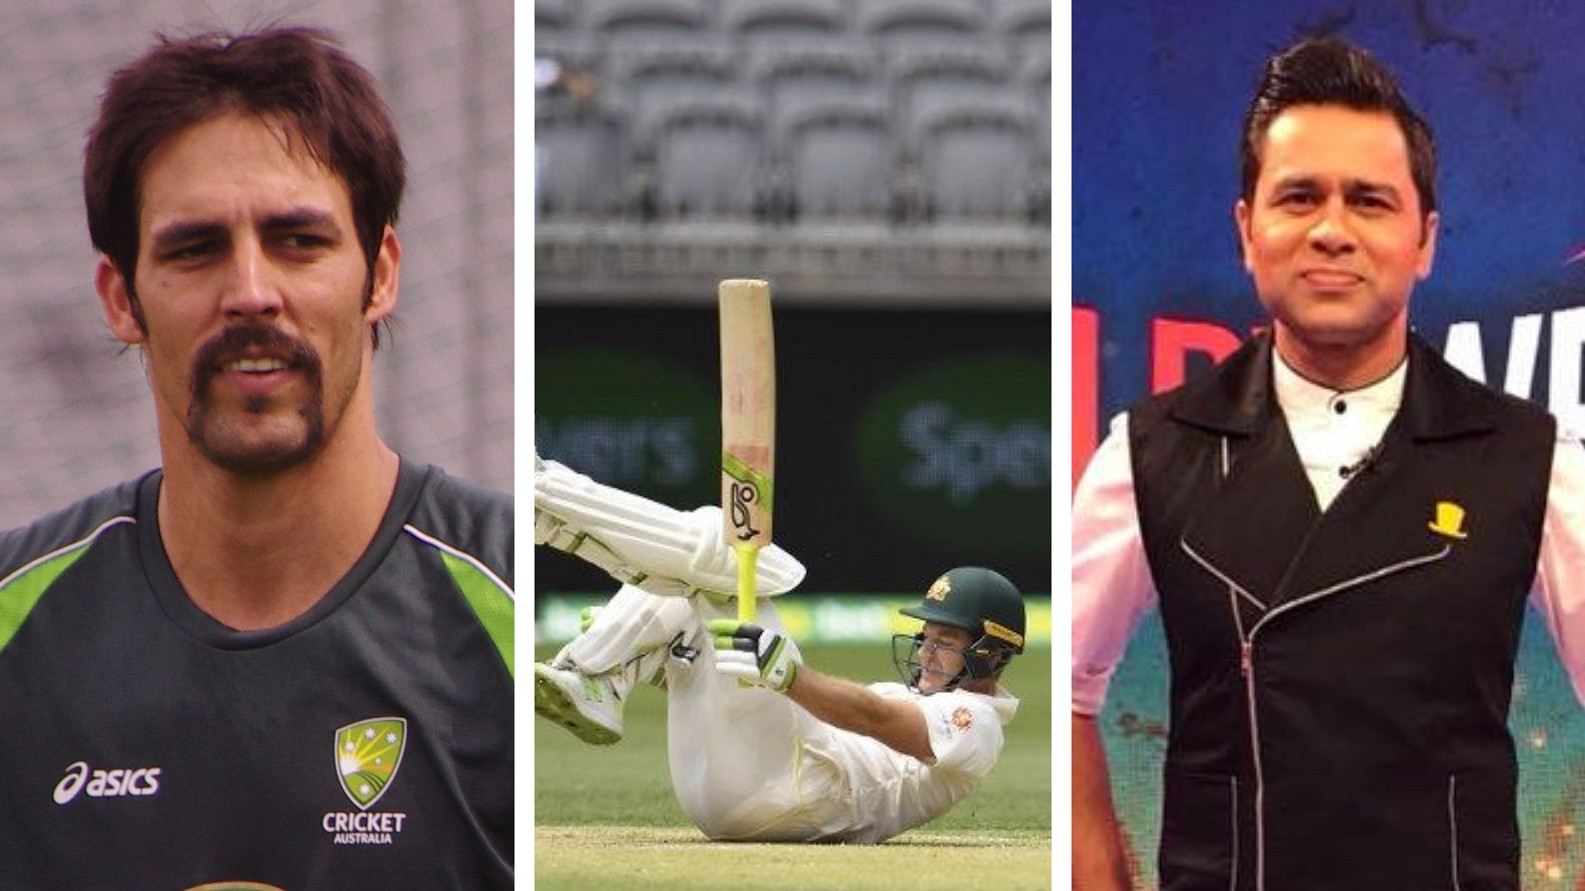 AUS v IND 2018-19: Aakash Chopra and Mitchell Johnson get involved in war of words on Perth pitch